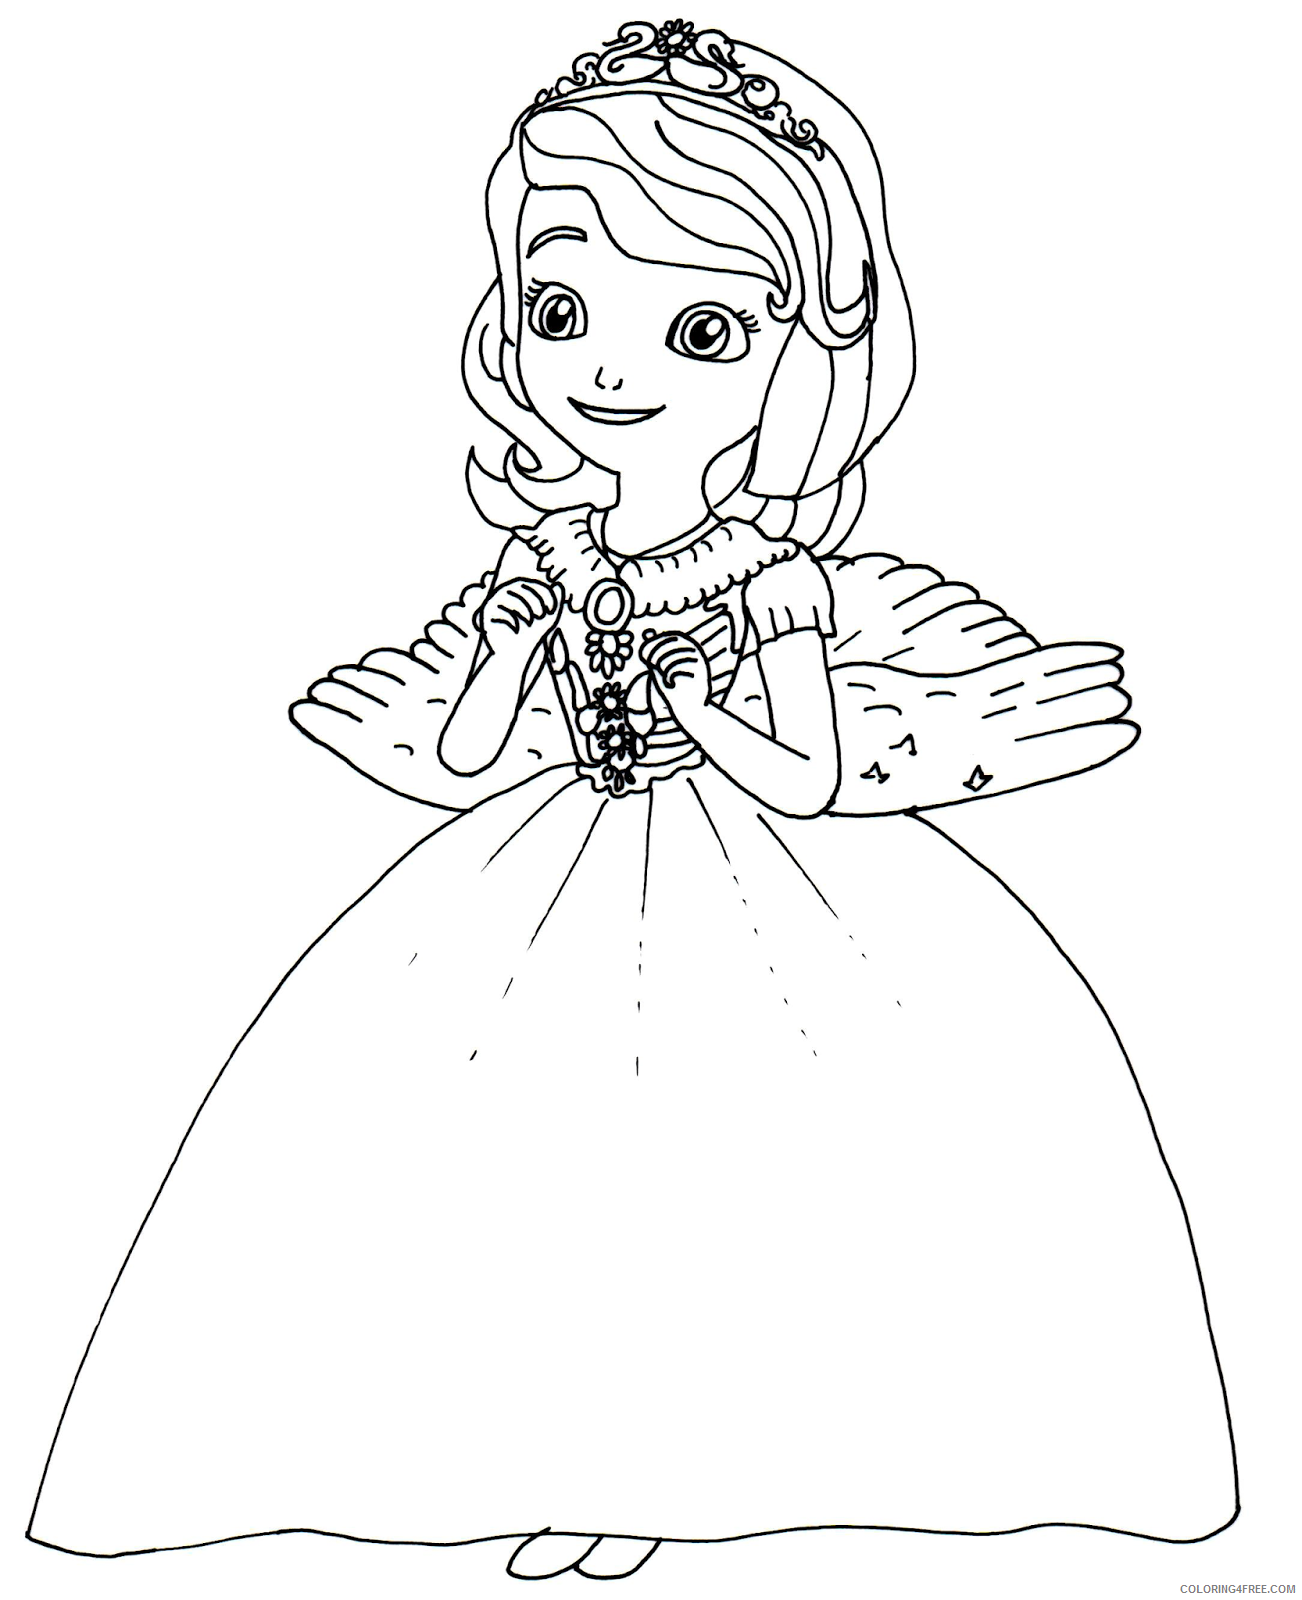 sofia the first coloring pages princess sofia angel costume Coloring4free